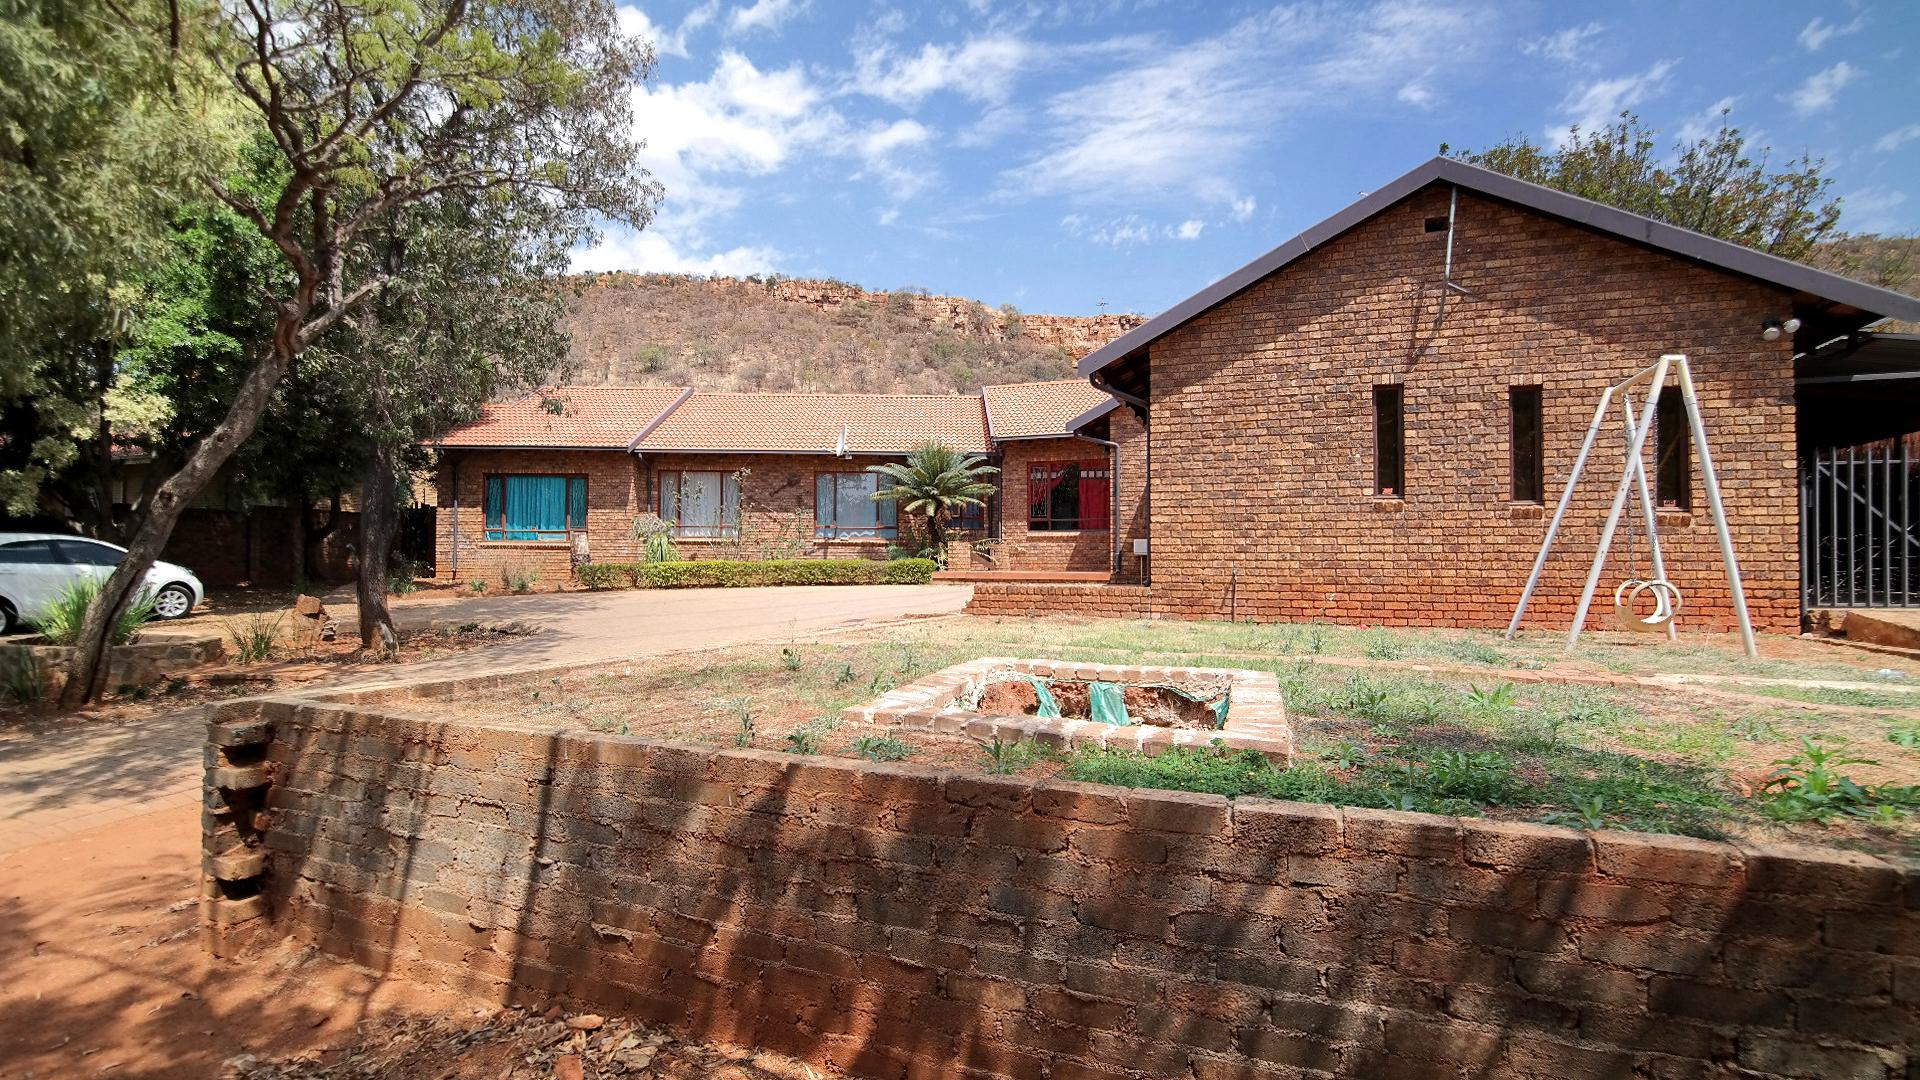 4 bedroom house for sale for sale in rustenburg private for North west house